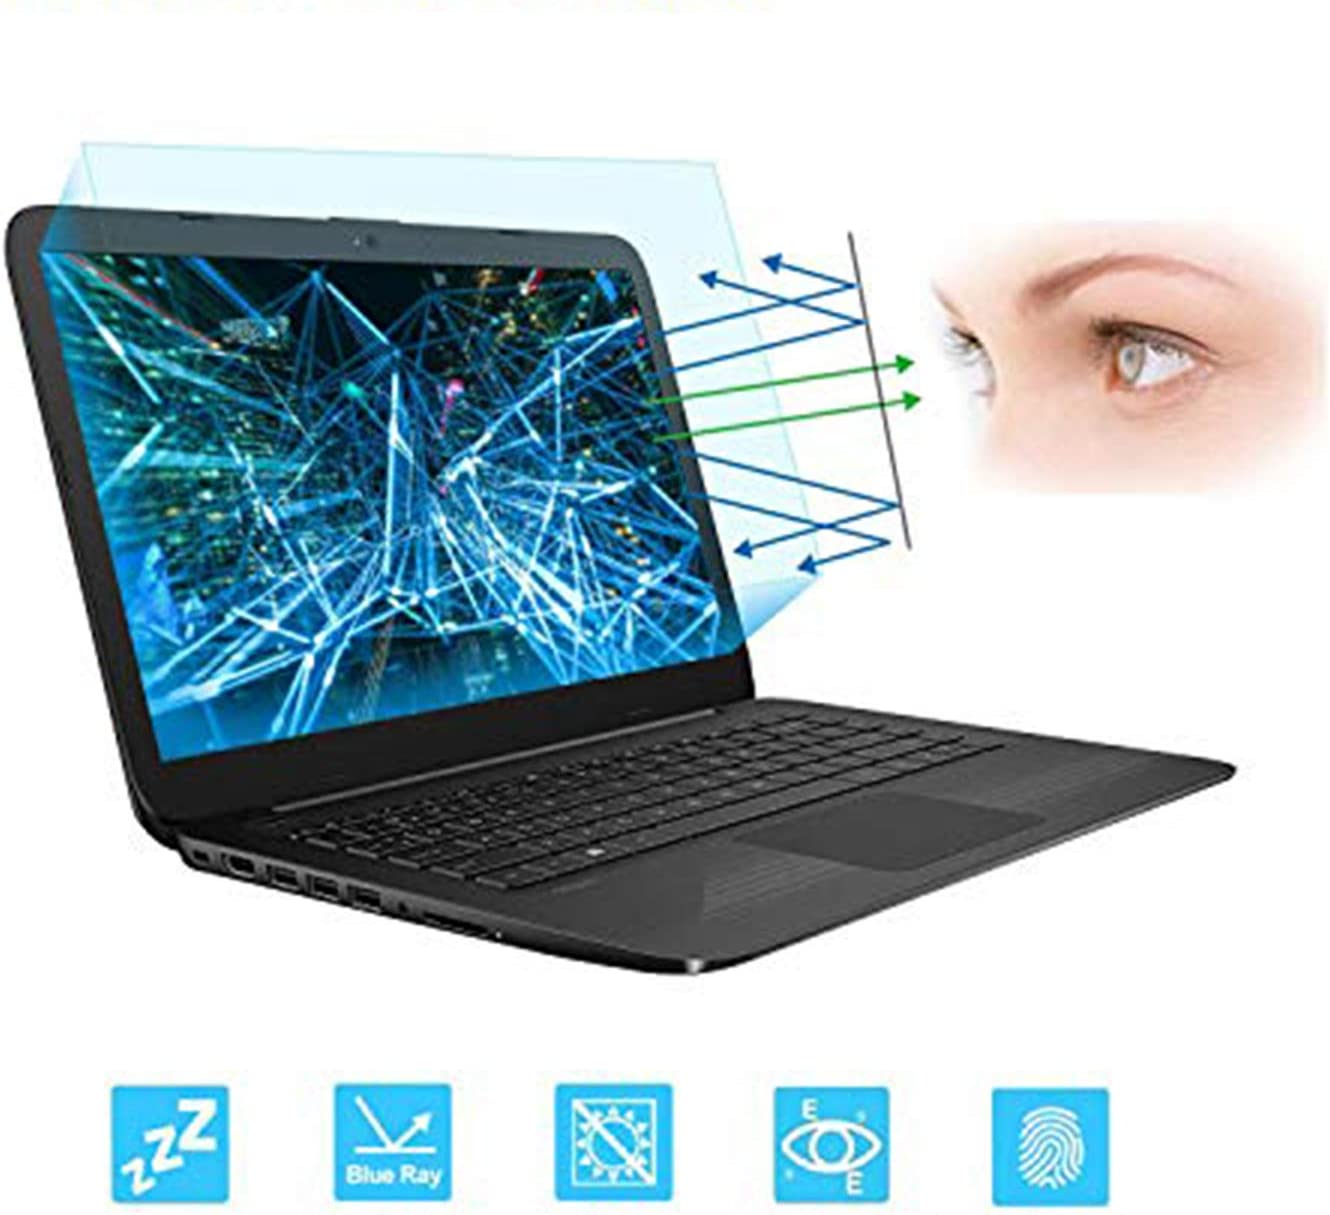 "FORITO 14 Inch Screen Protector -Blue Light and Anti Glare Filter, Eye Protection Blue Light Blocking & Anti Glare Screen Protector for 14"" with 16:9 Aspect Ratio Laptop"